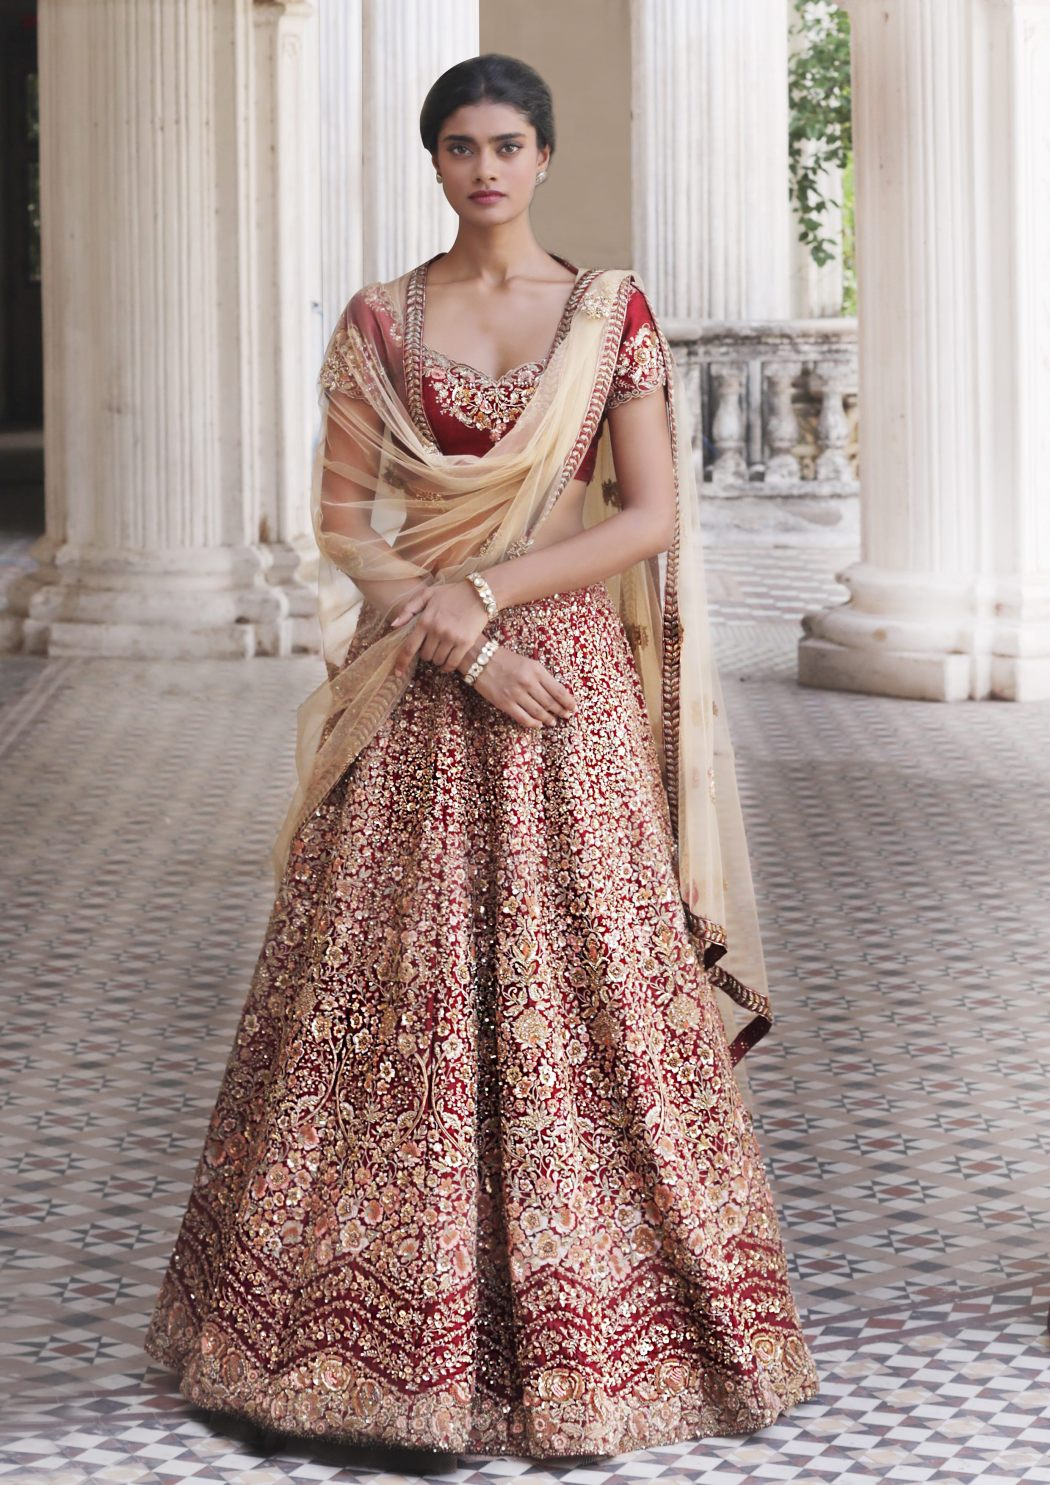 Sought after Indian designer duo Shyamal and Bhumika